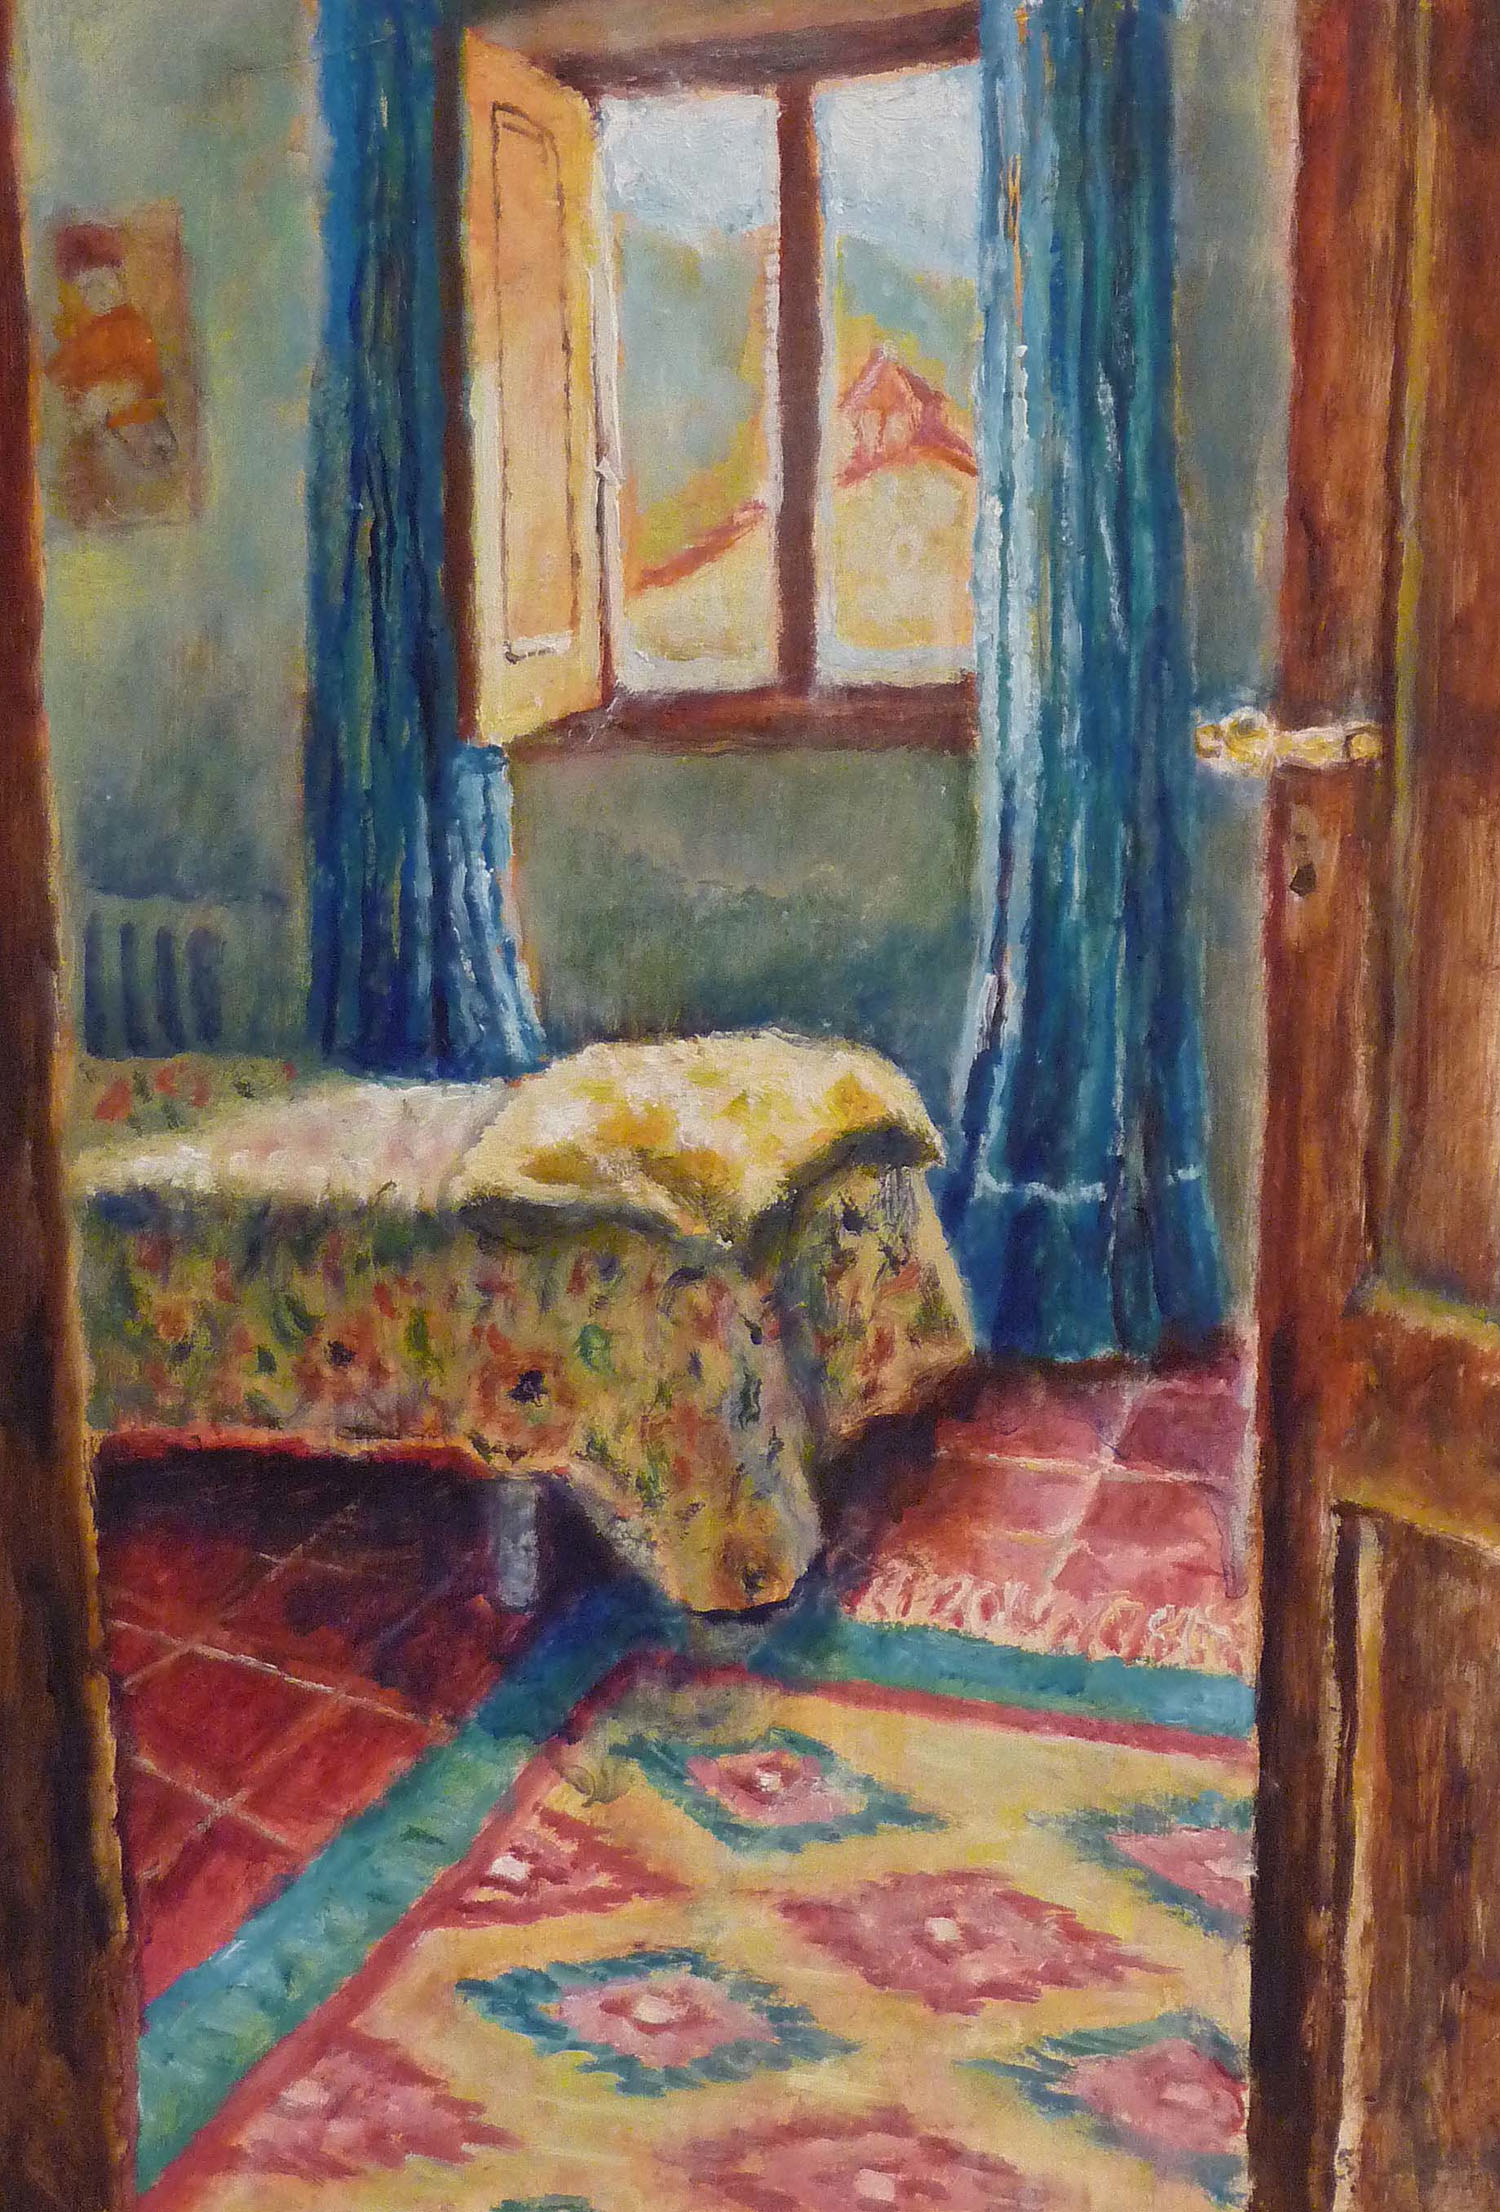 Sarah Longley_-_The Blue Curtains_oil on board_45 x 31cm.jpg